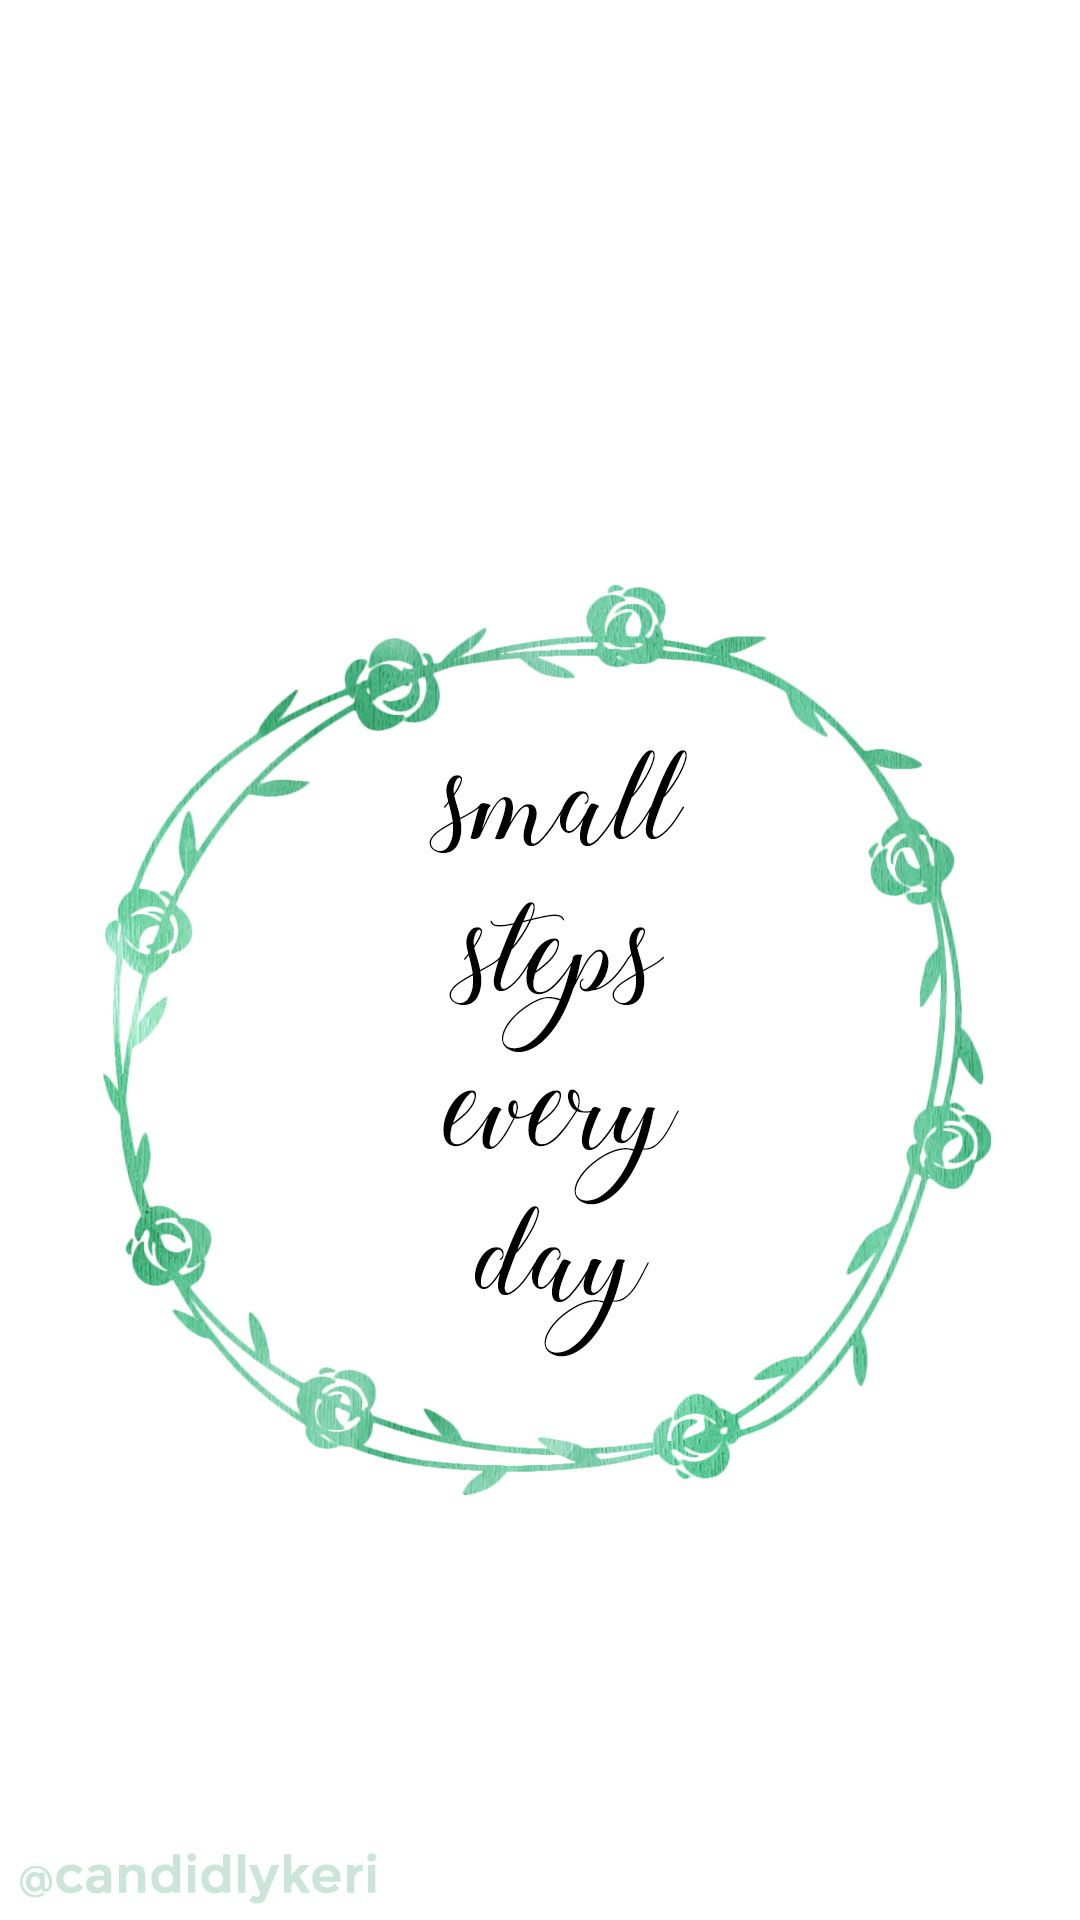 Small steps every day green watercolor flower wreath crown quote small steps every day green watercolor flower wreath crown quote inspirational background wallpaper you can download for free on the blog izmirmasajfo